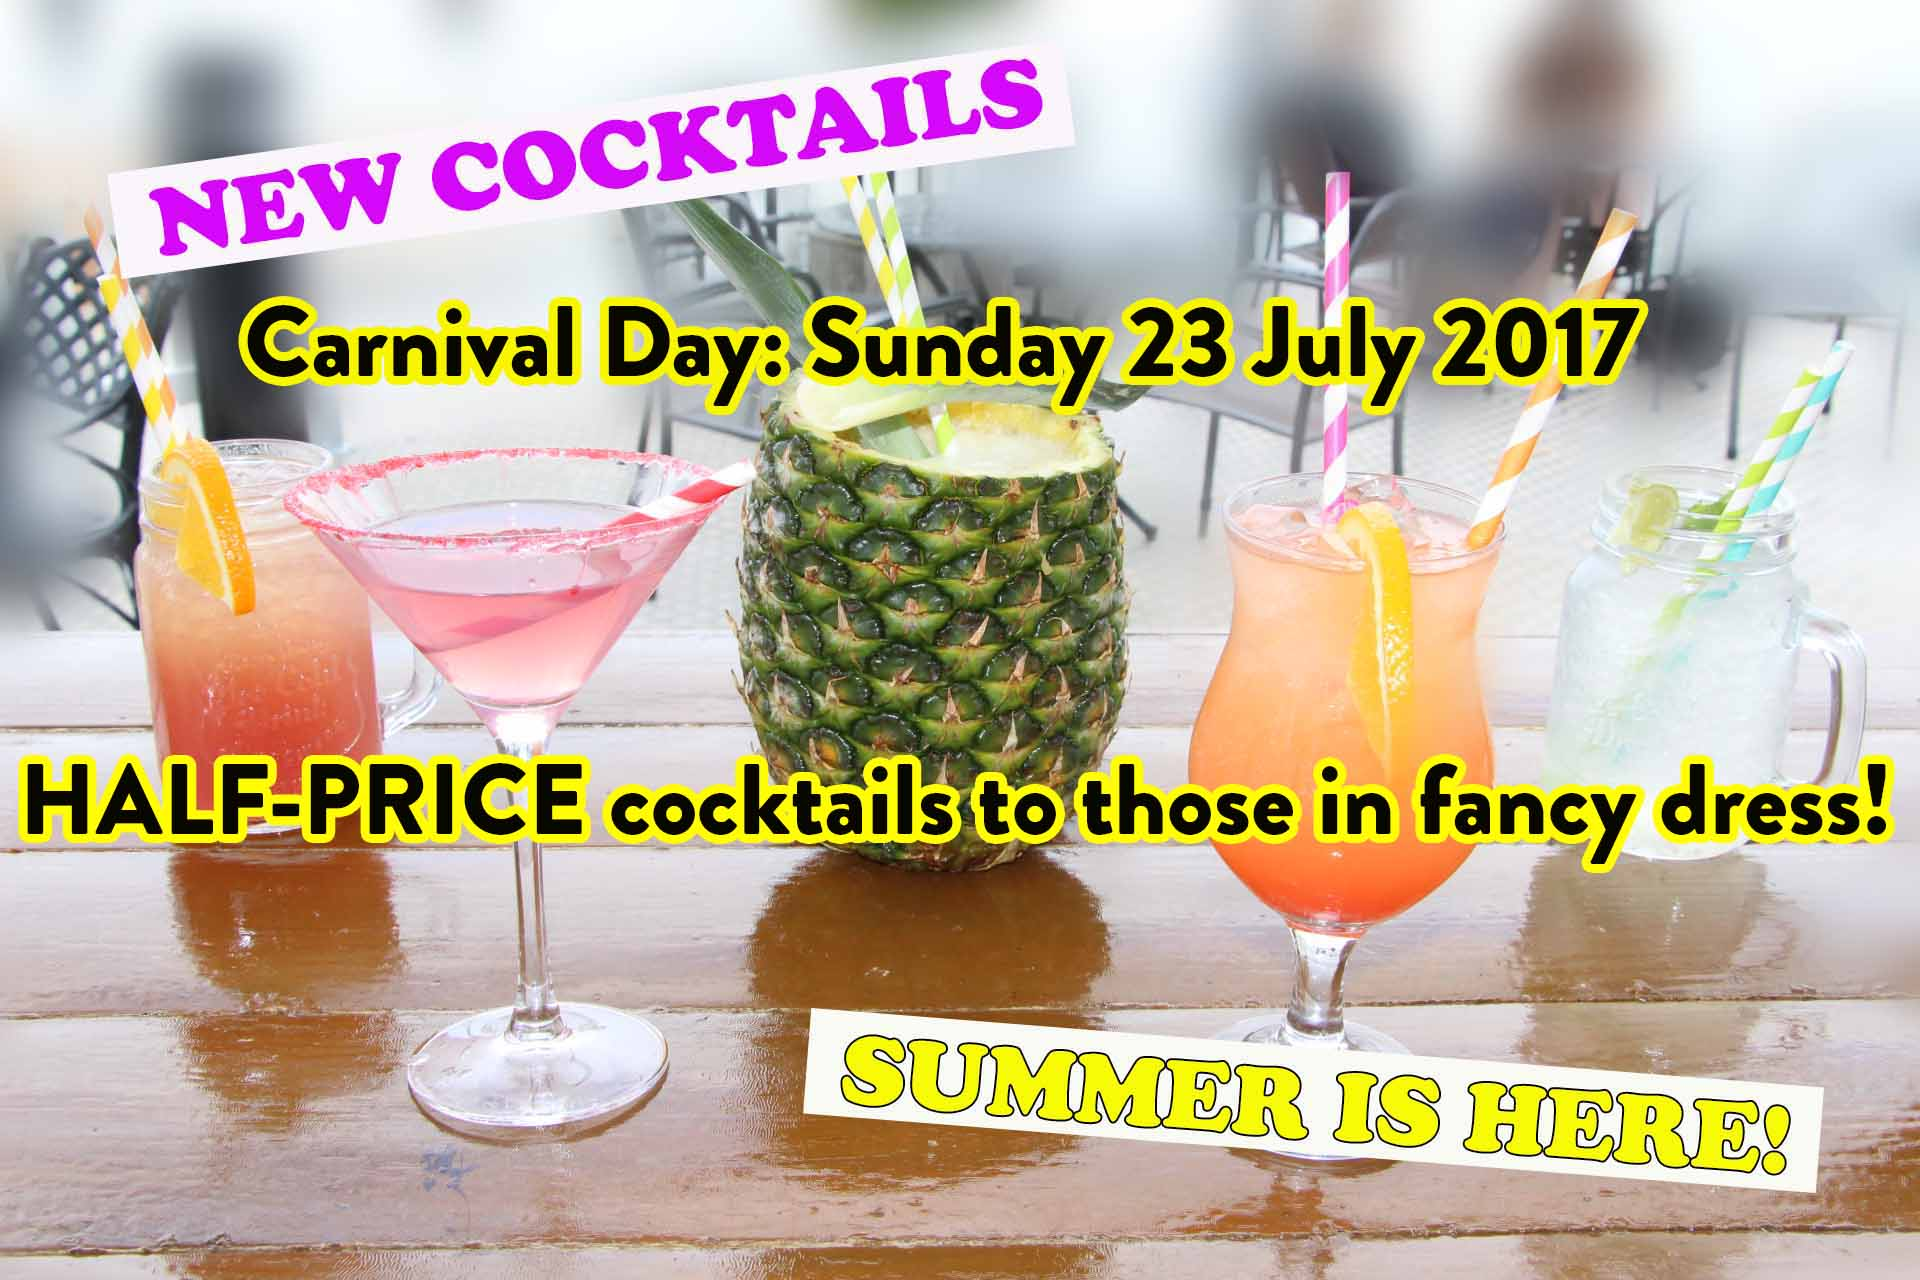 Sunday 23 July: Half-price cocktails to those in fancy dress